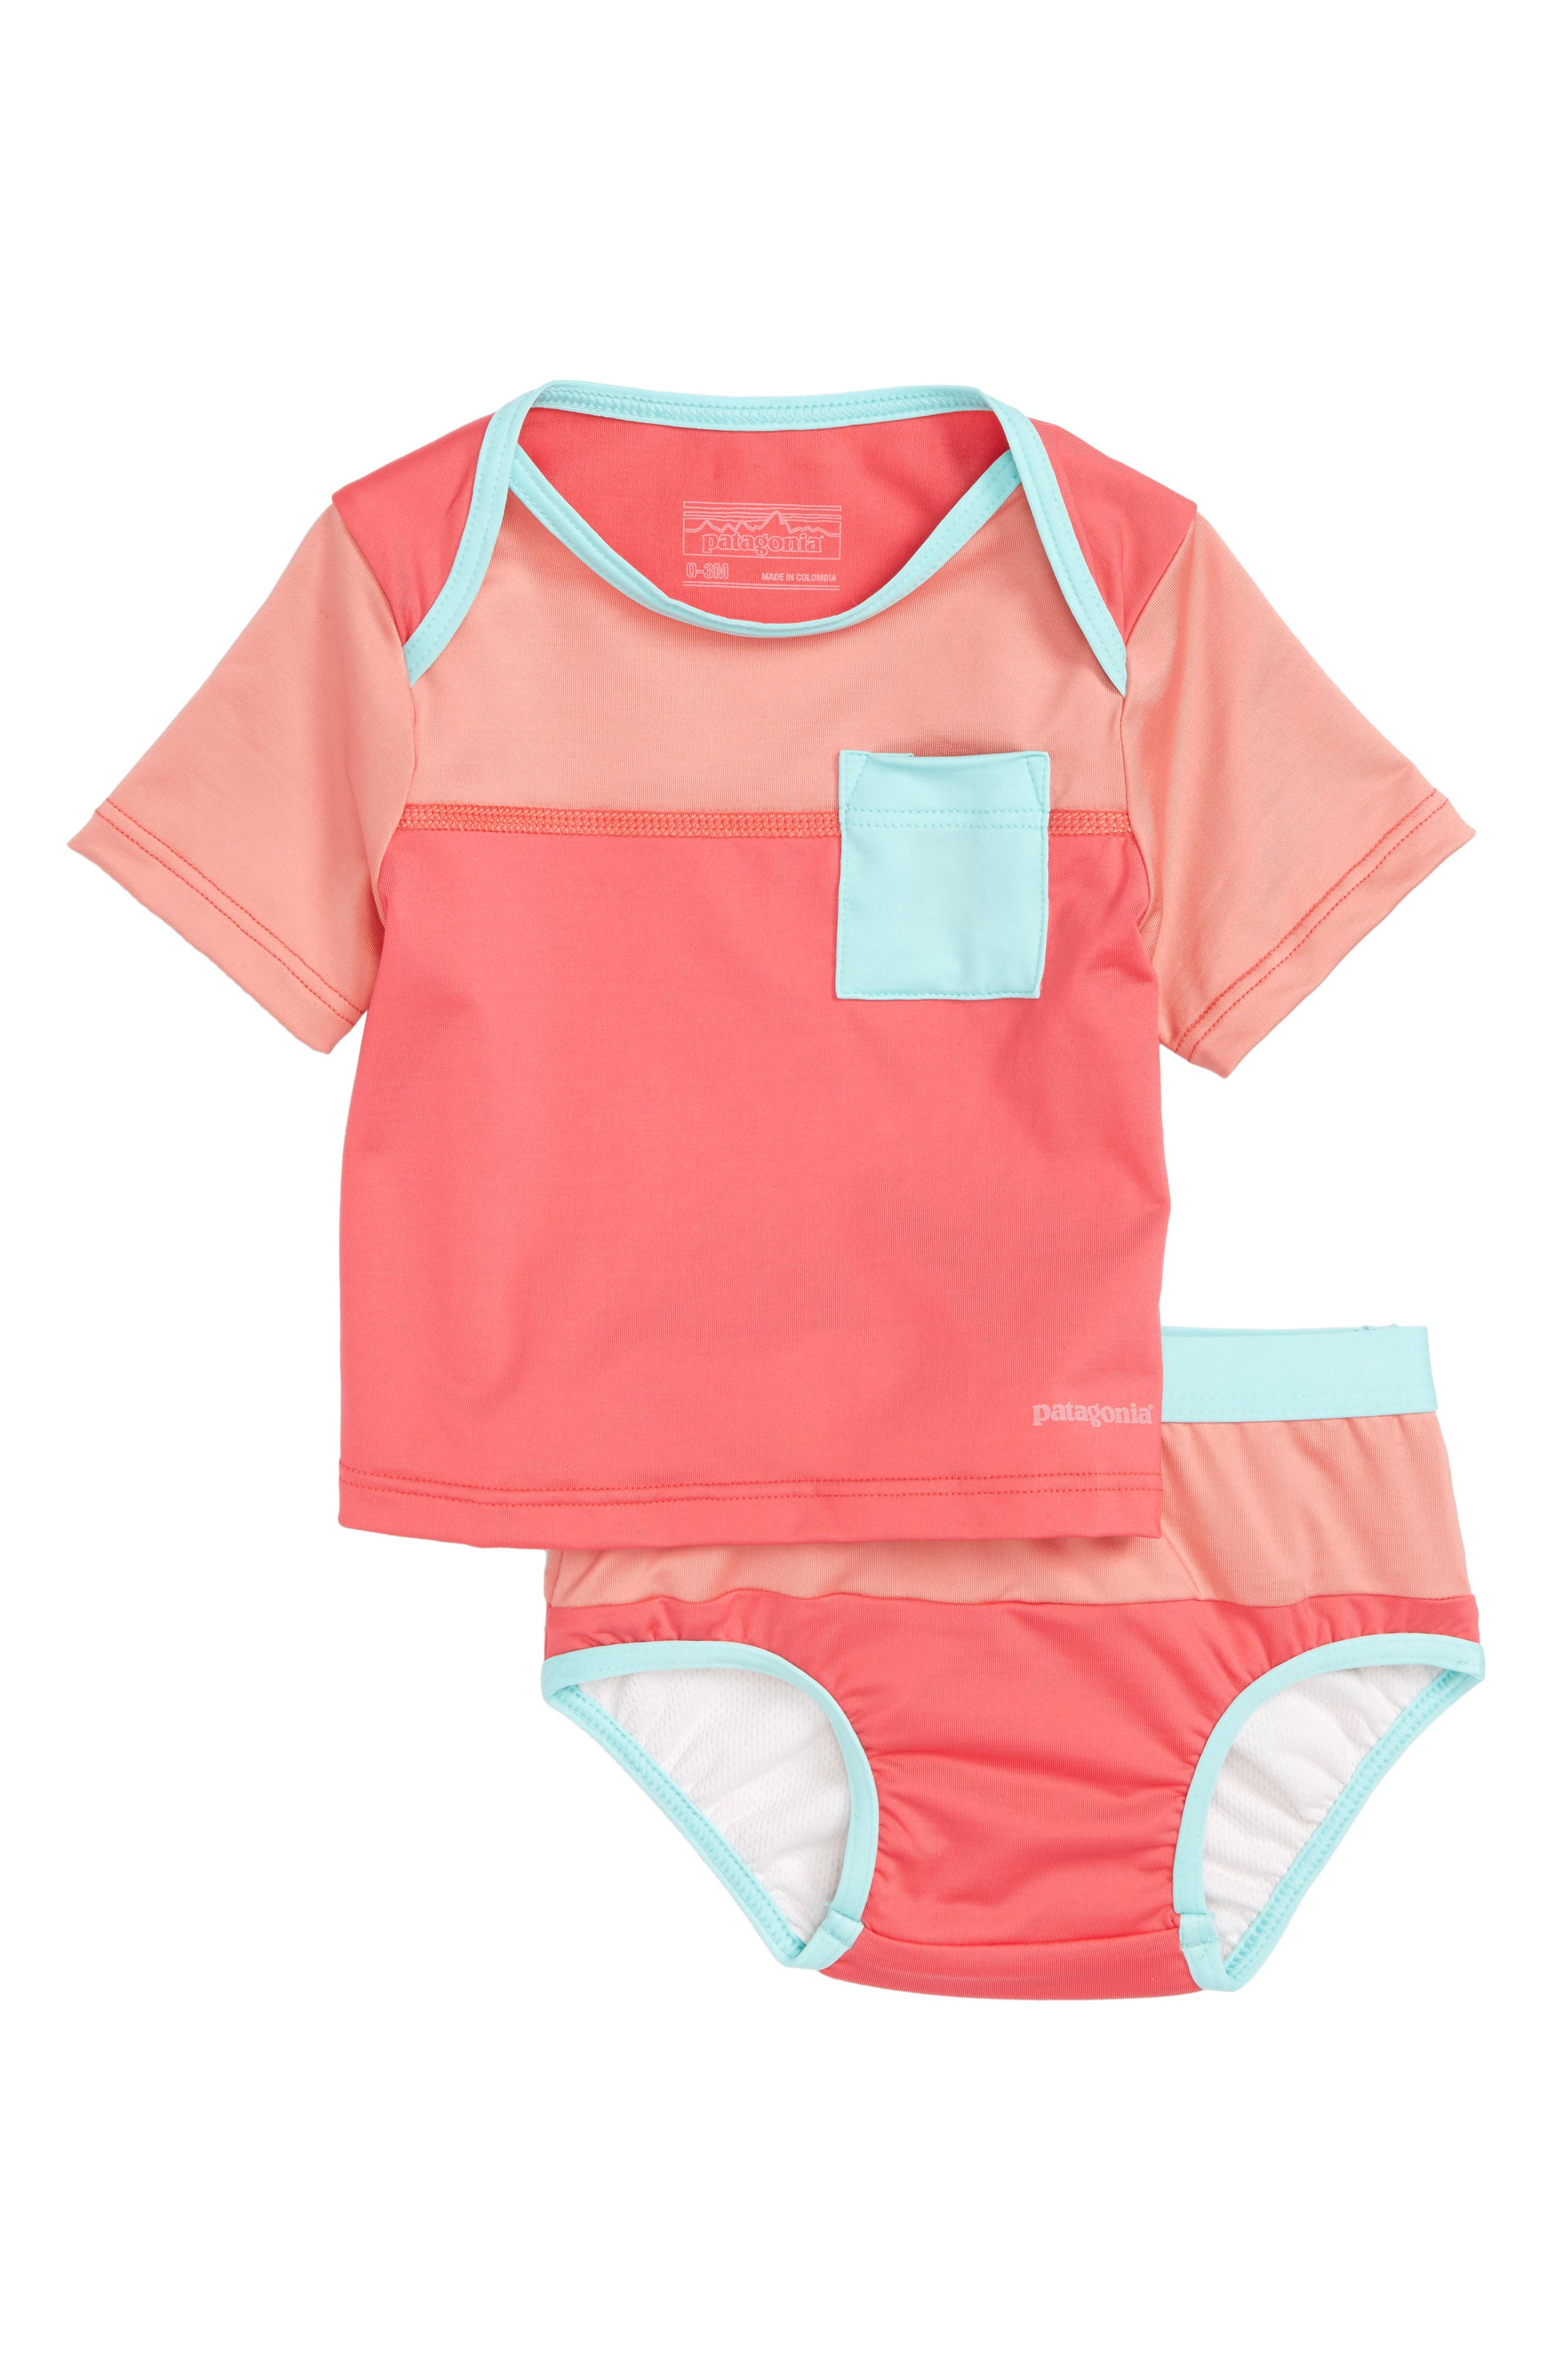 Alternate Image 1 Selected - Patagonia 'Little Sol' Two-Piece Rashguard Swimsuit (Baby Girls)